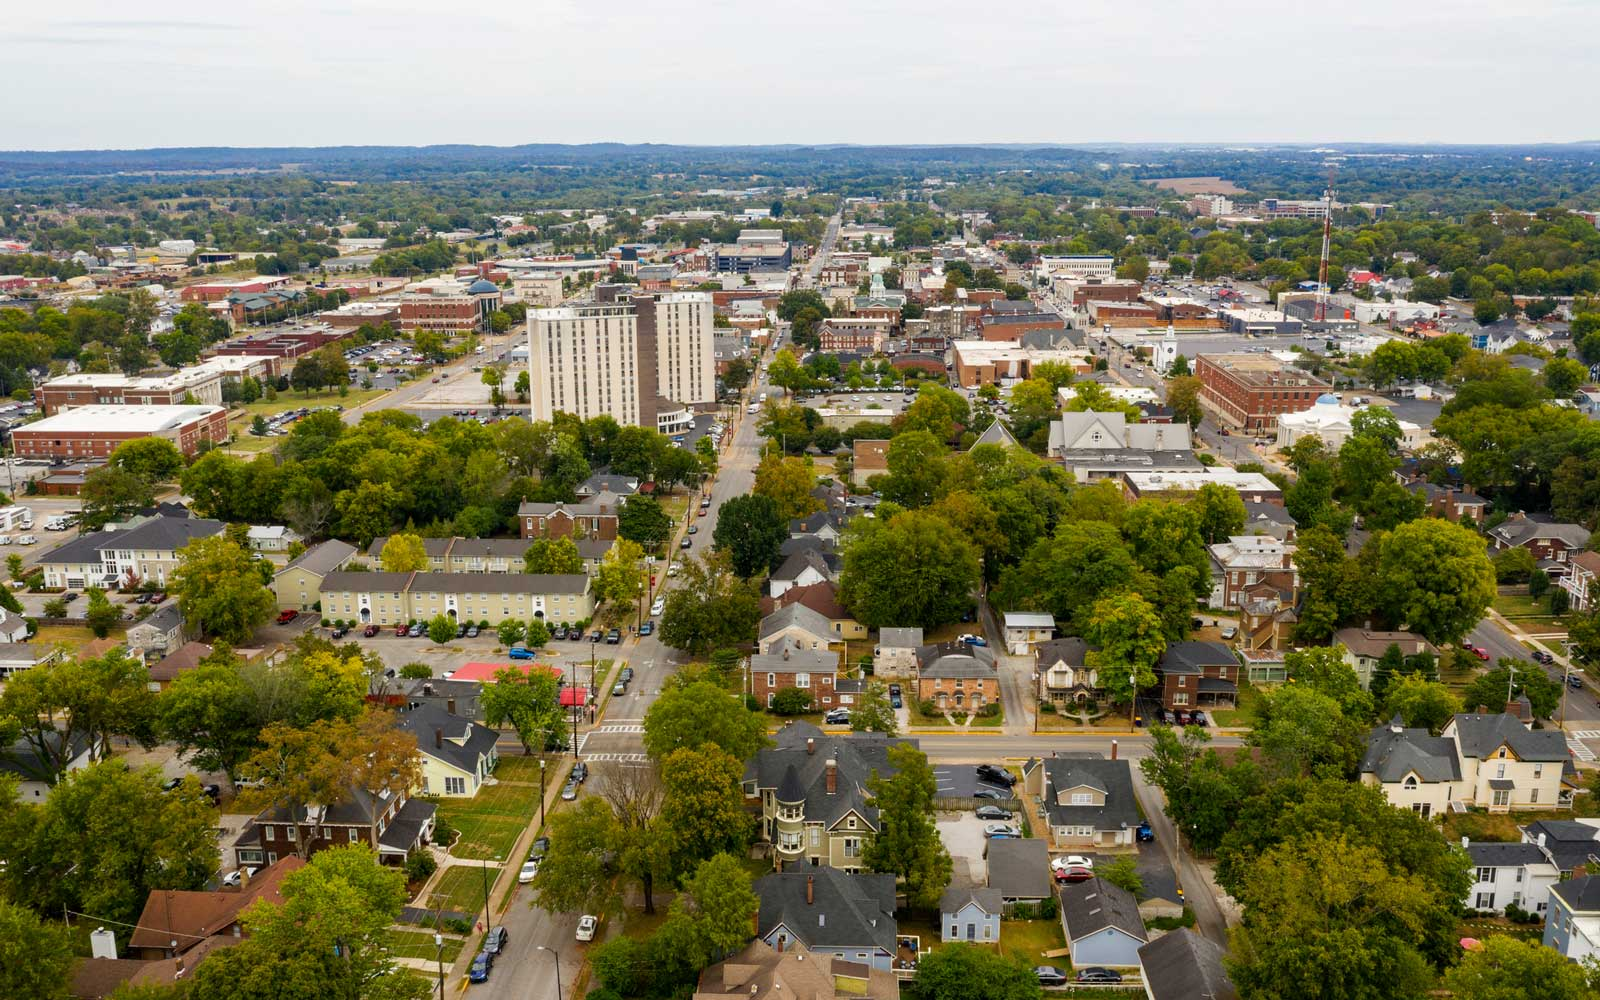 Aerial View over the Urban Downtown Area of Bowling Green Kentucky